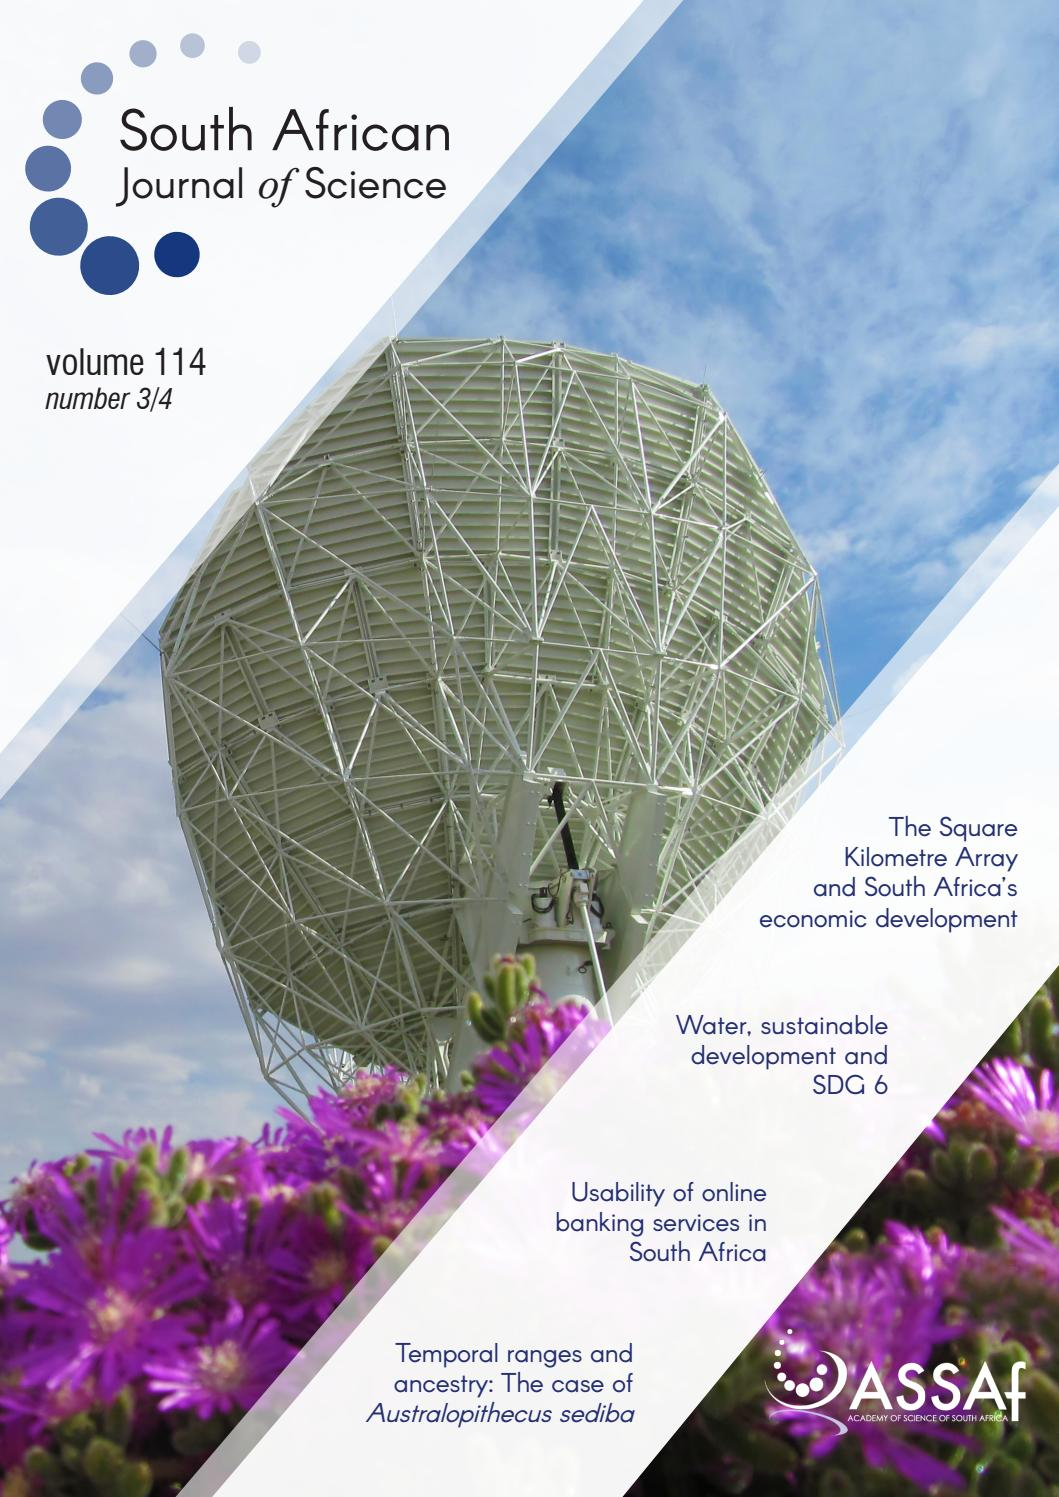 South African Journal of Science Volume 114 Issue 3/4 by